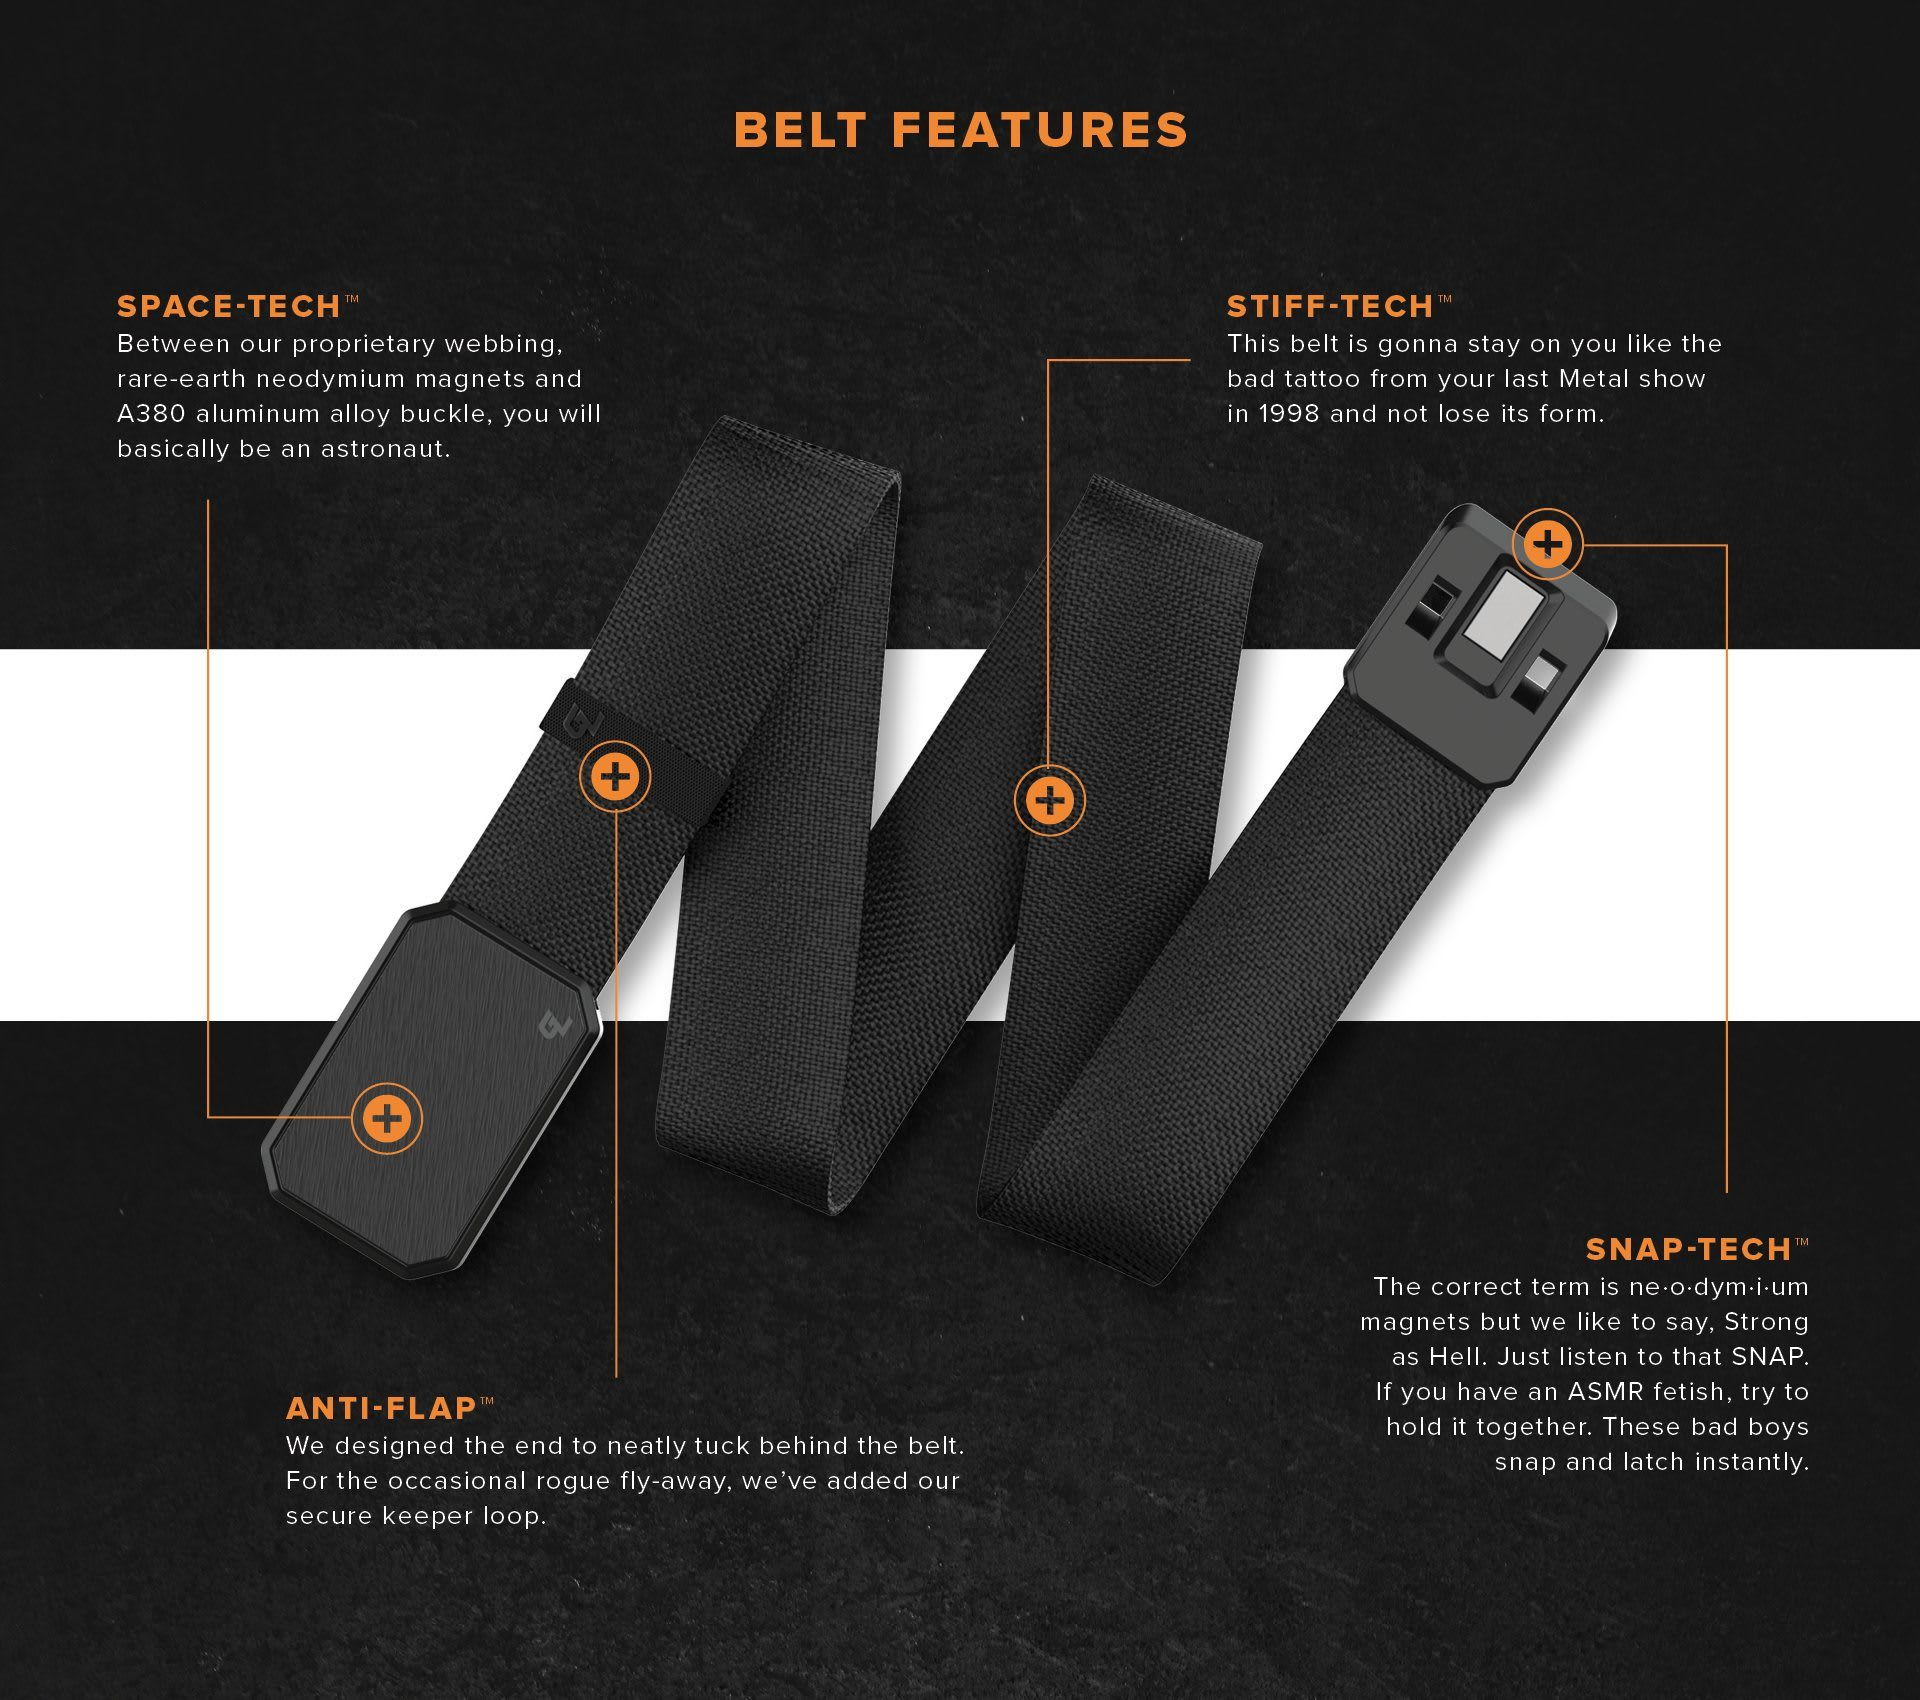 Belt Features; Space Tech, Stiff Tech, Snap-Tech and Anti-Flap